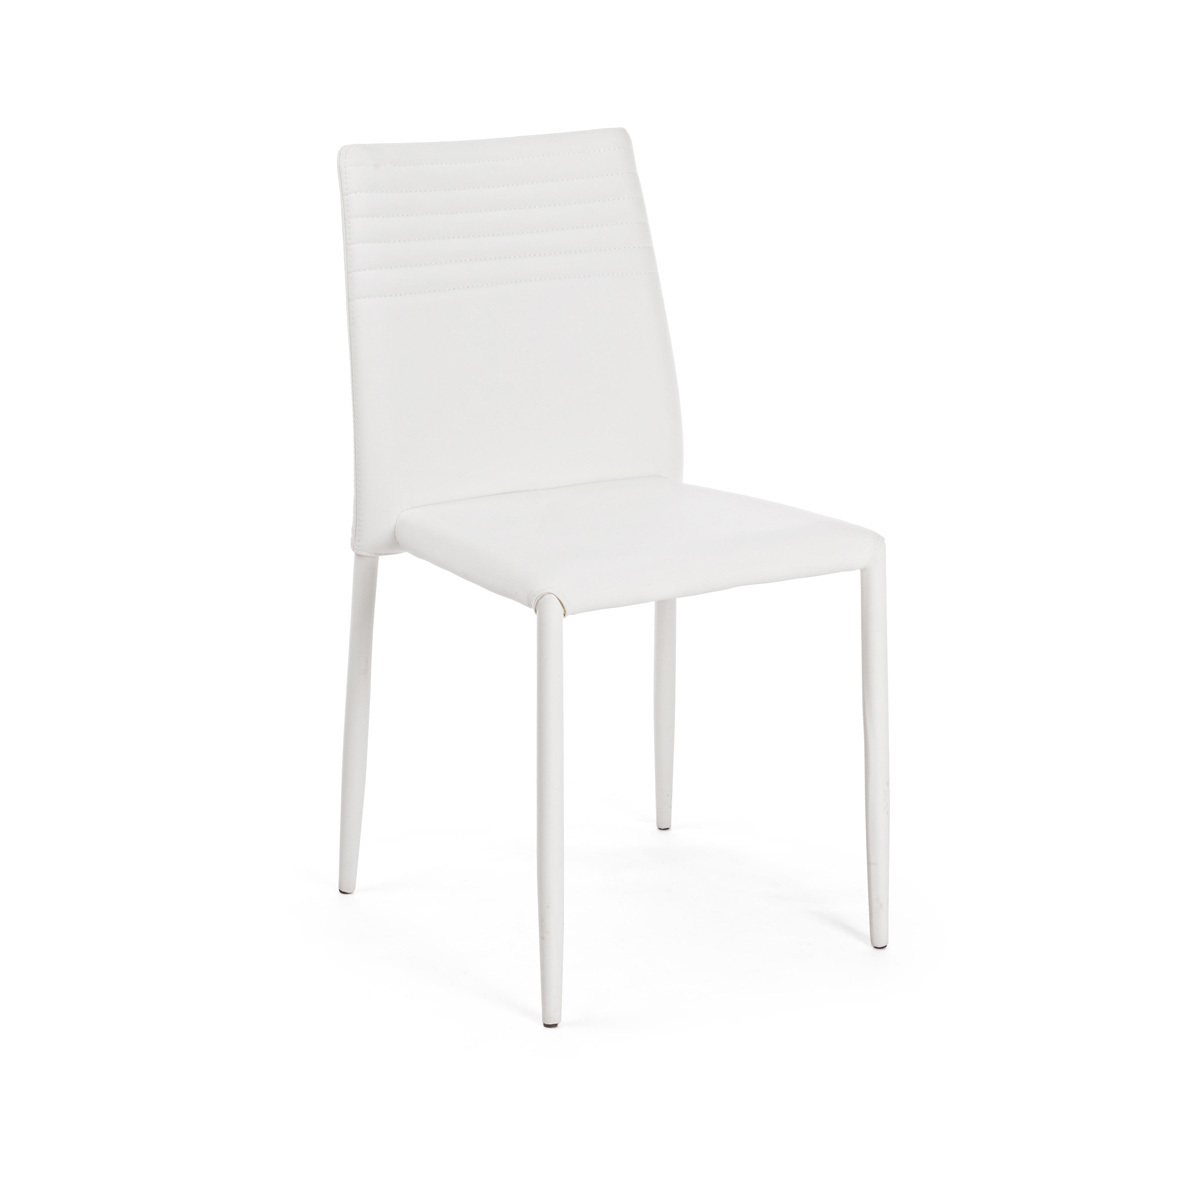 Photos 1: Bizzotto Chair in metal and eco-leather - white 0731794